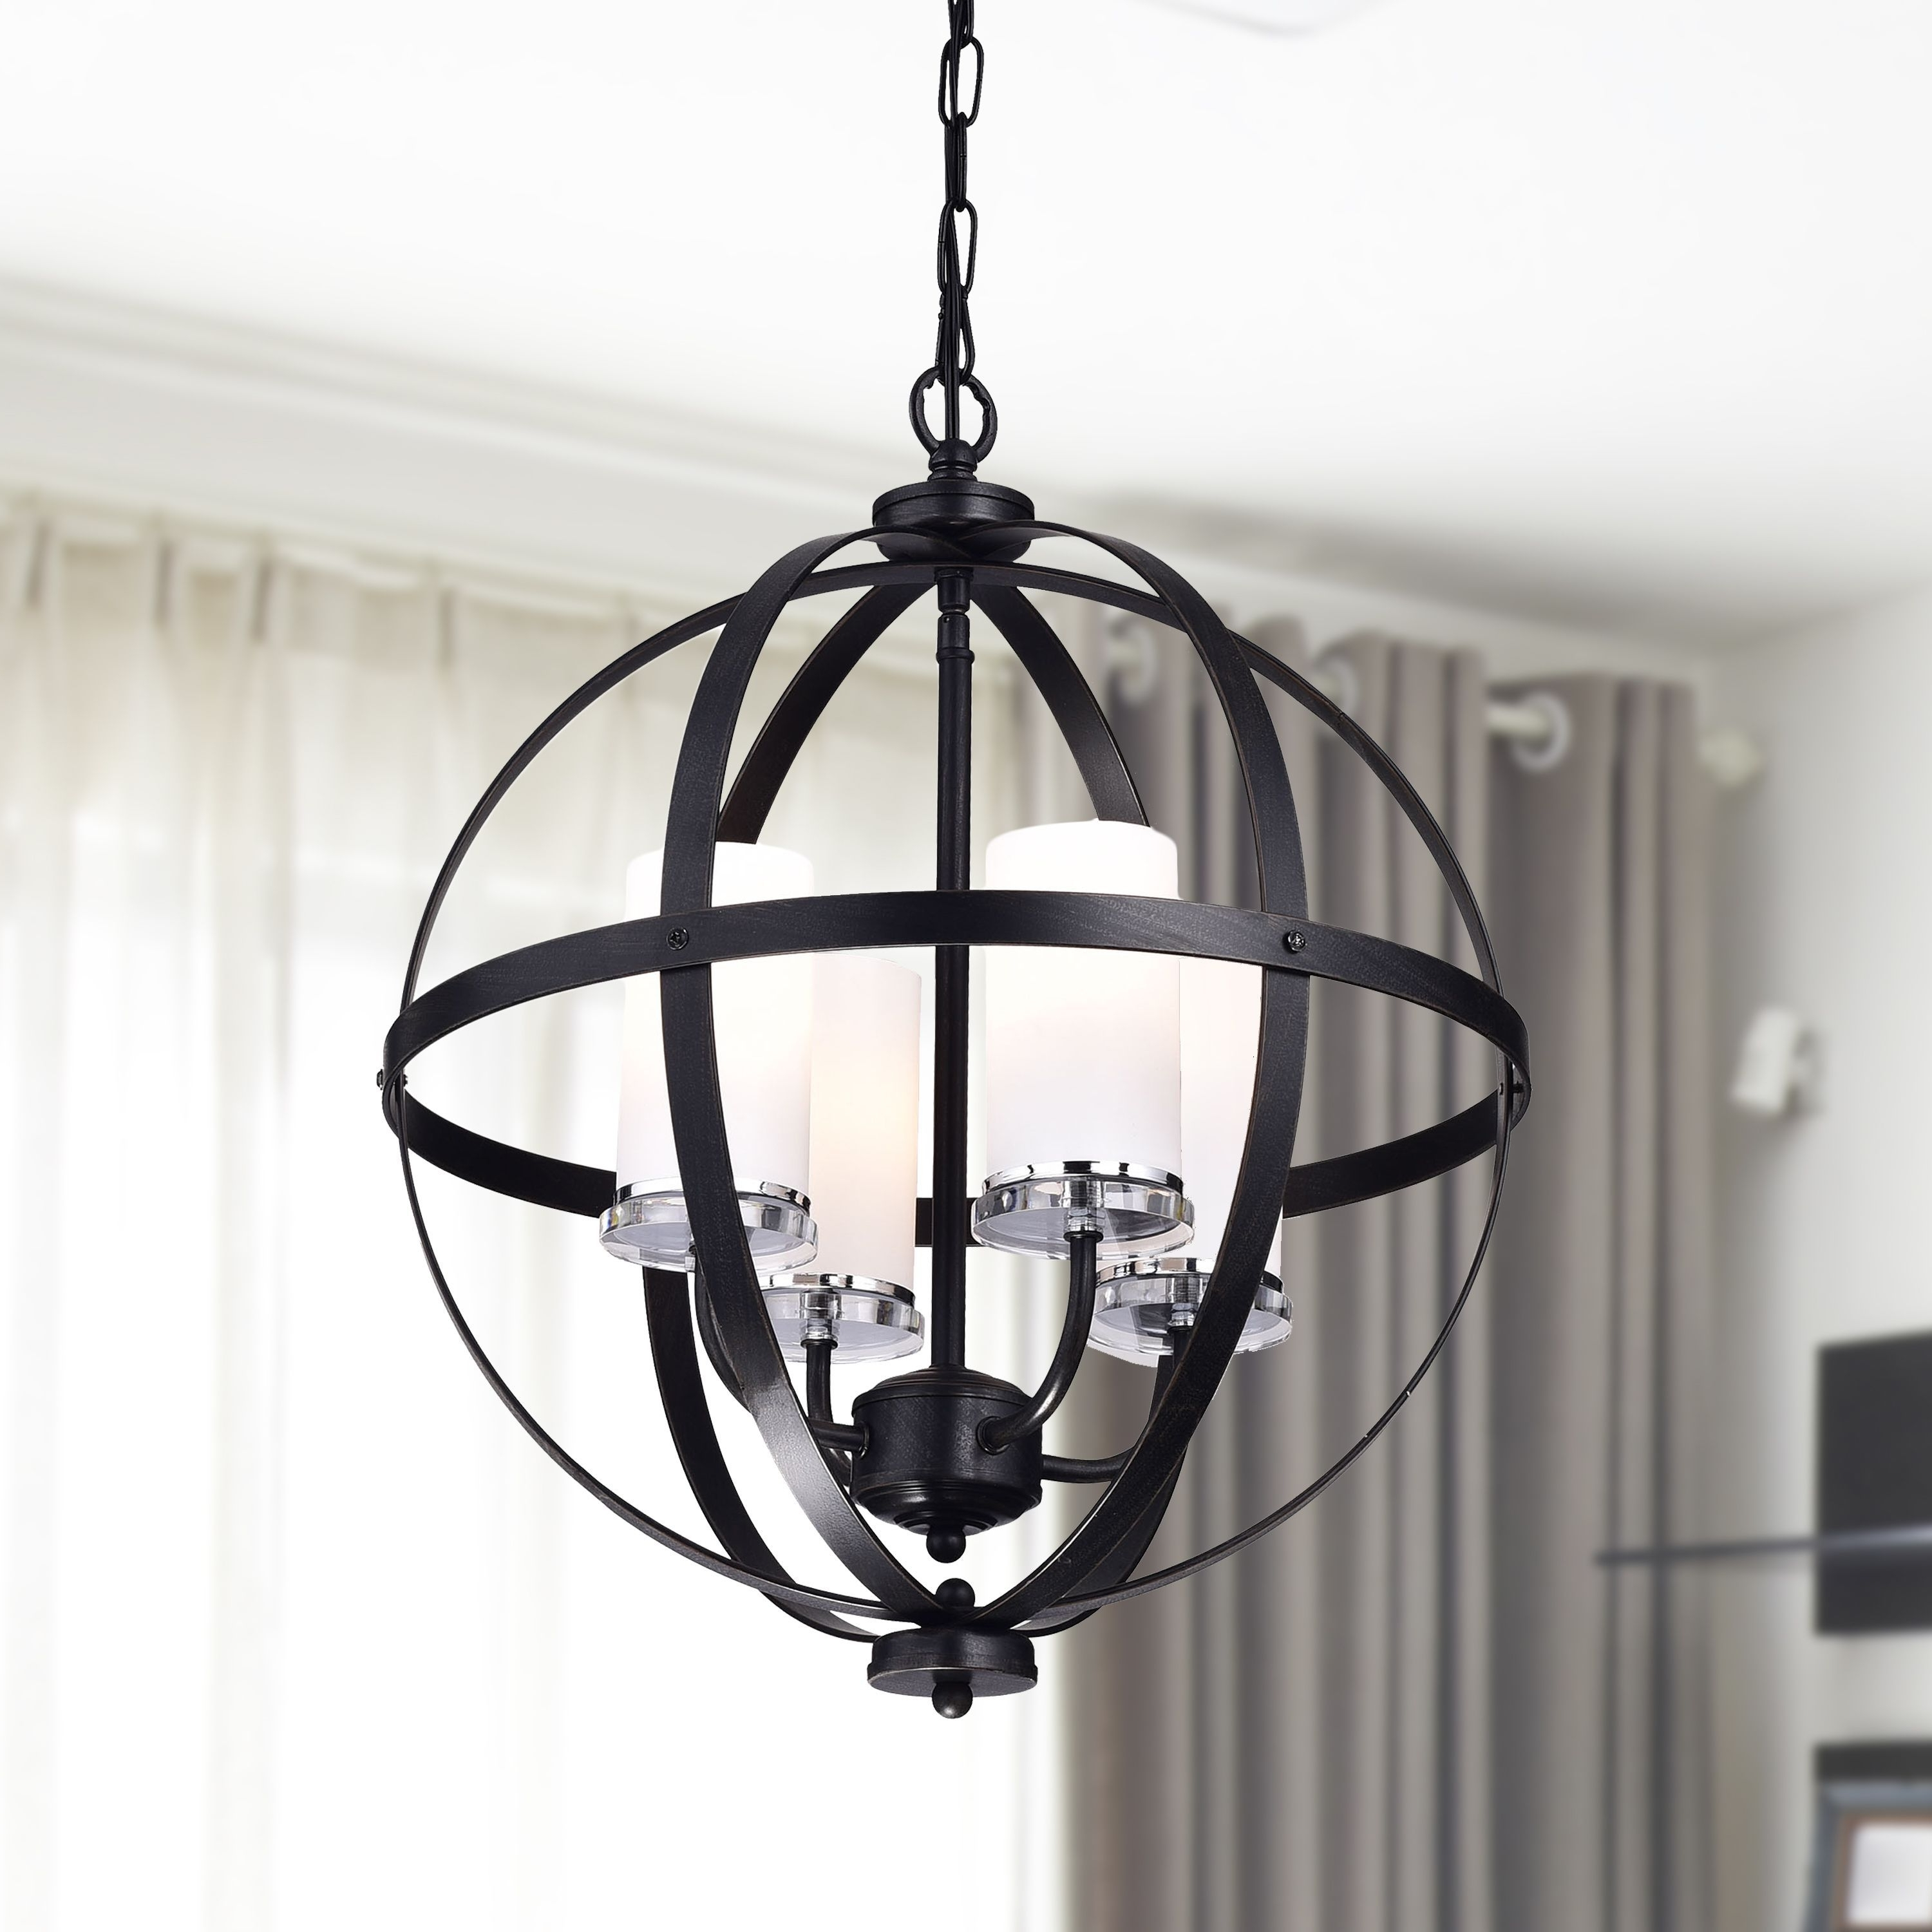 Benita Antique Black Iron Orb Chandelier With Glass Globe (Antique With Regard To Well Liked Antique Black Chandelier (View 10 of 15)